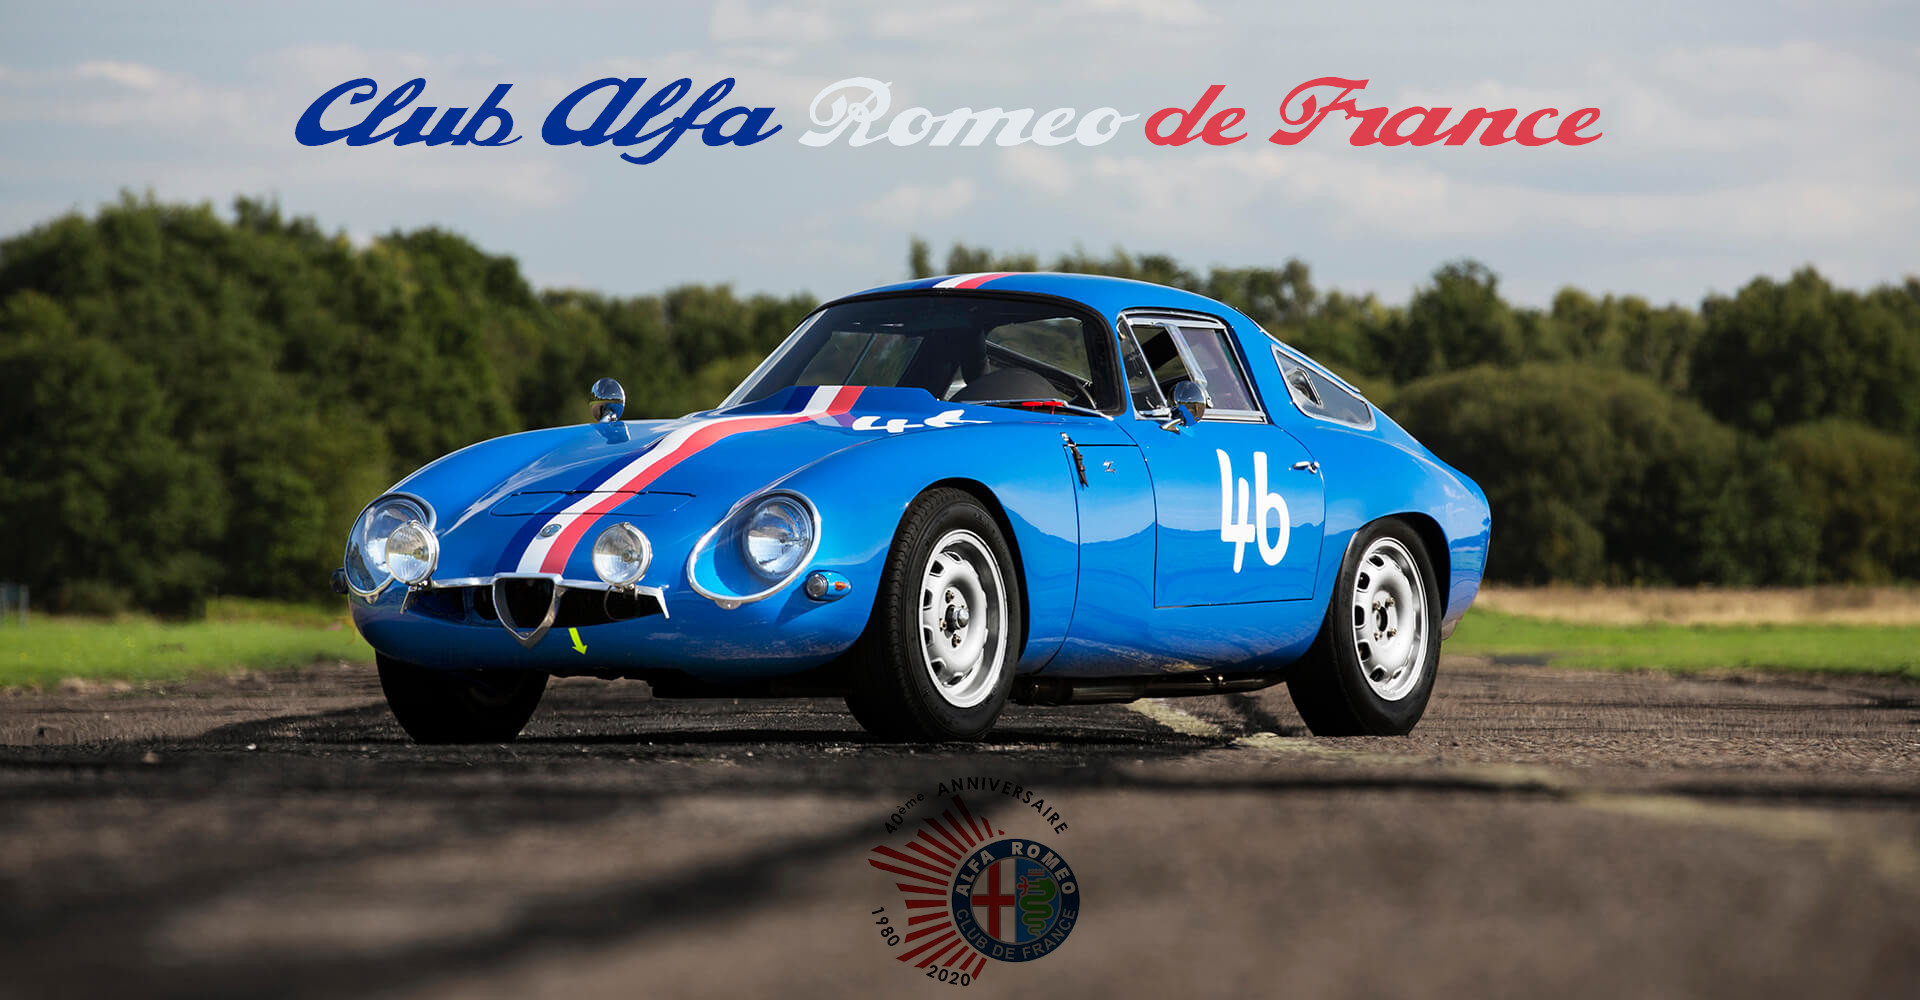 Club Alfa Romeo de France